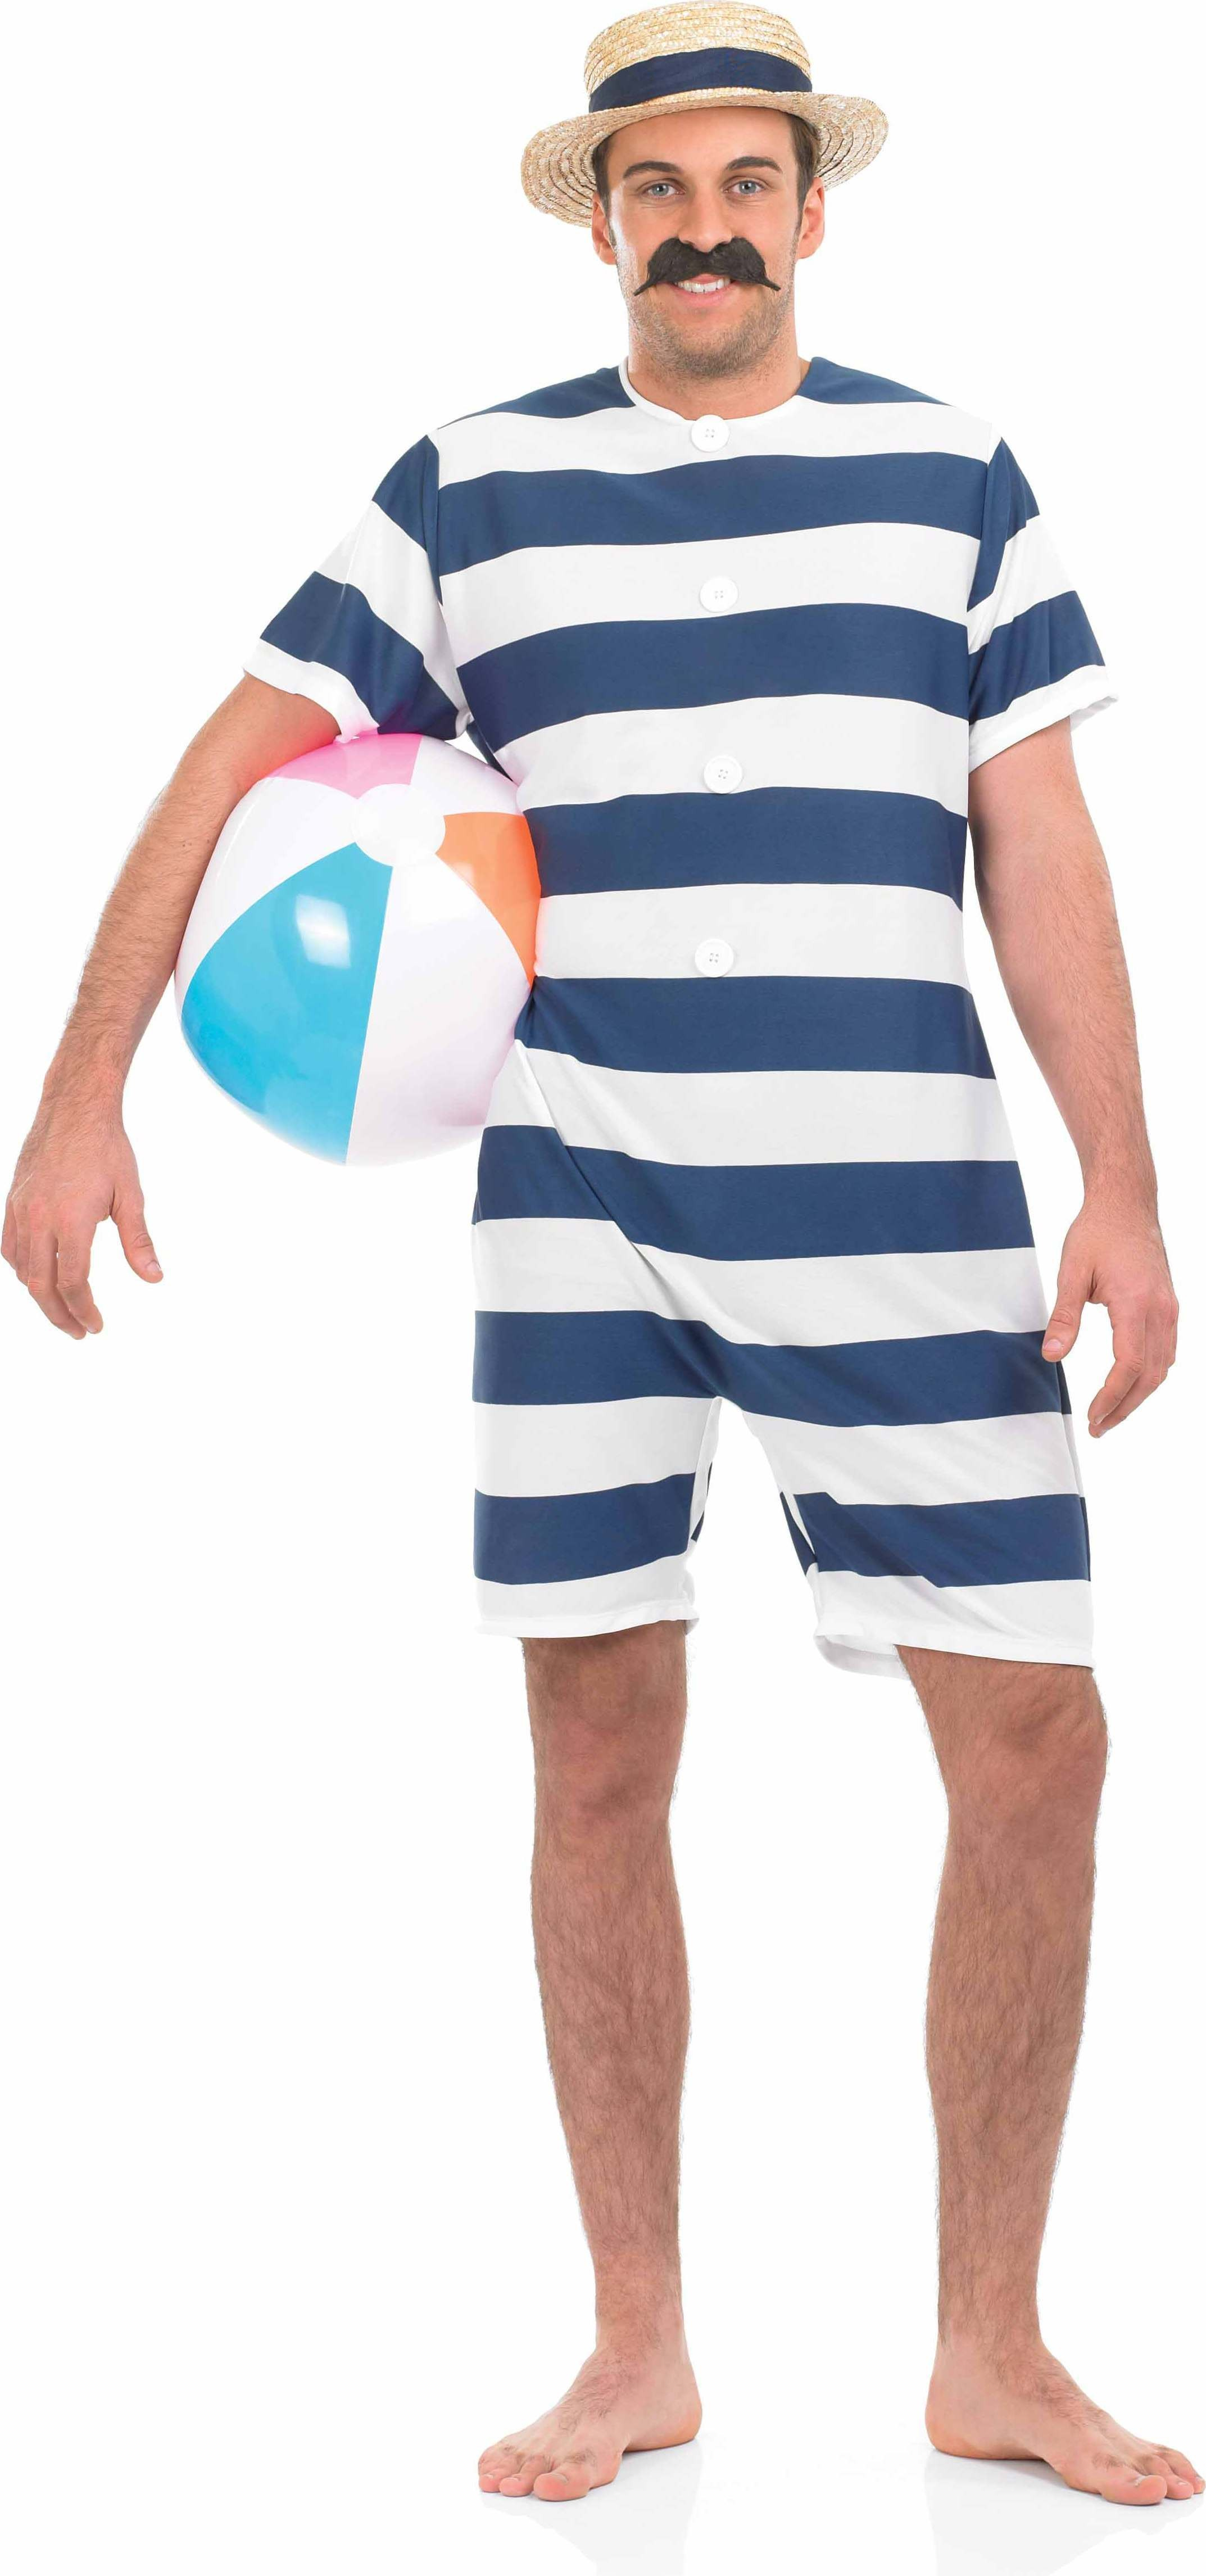 Mens Mens Old Time Bathing Suit Old English Outfit (White, Blue)